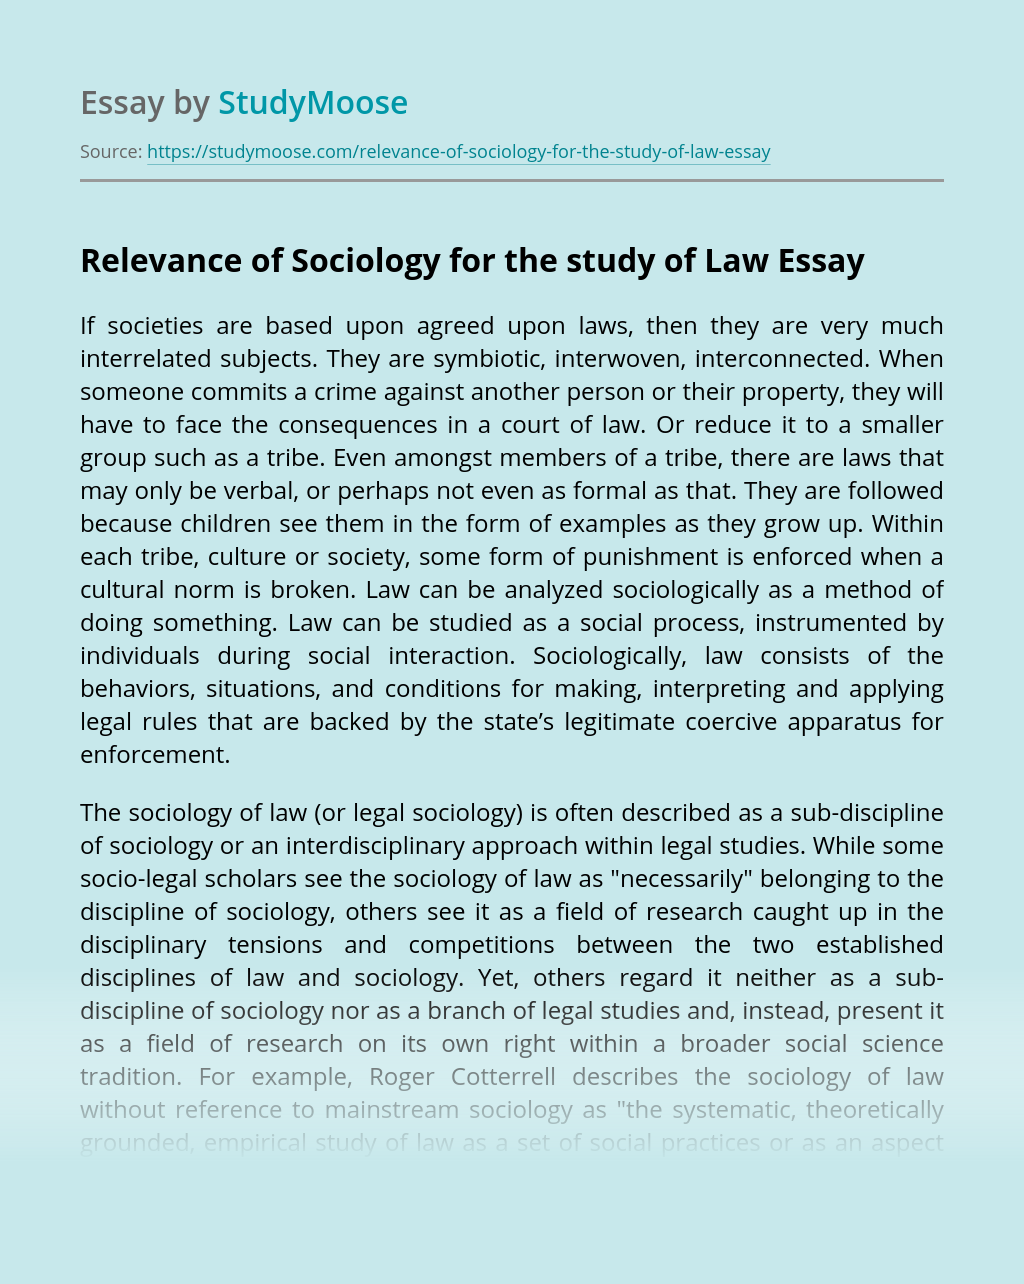 Relevance of Sociology for the study of Law